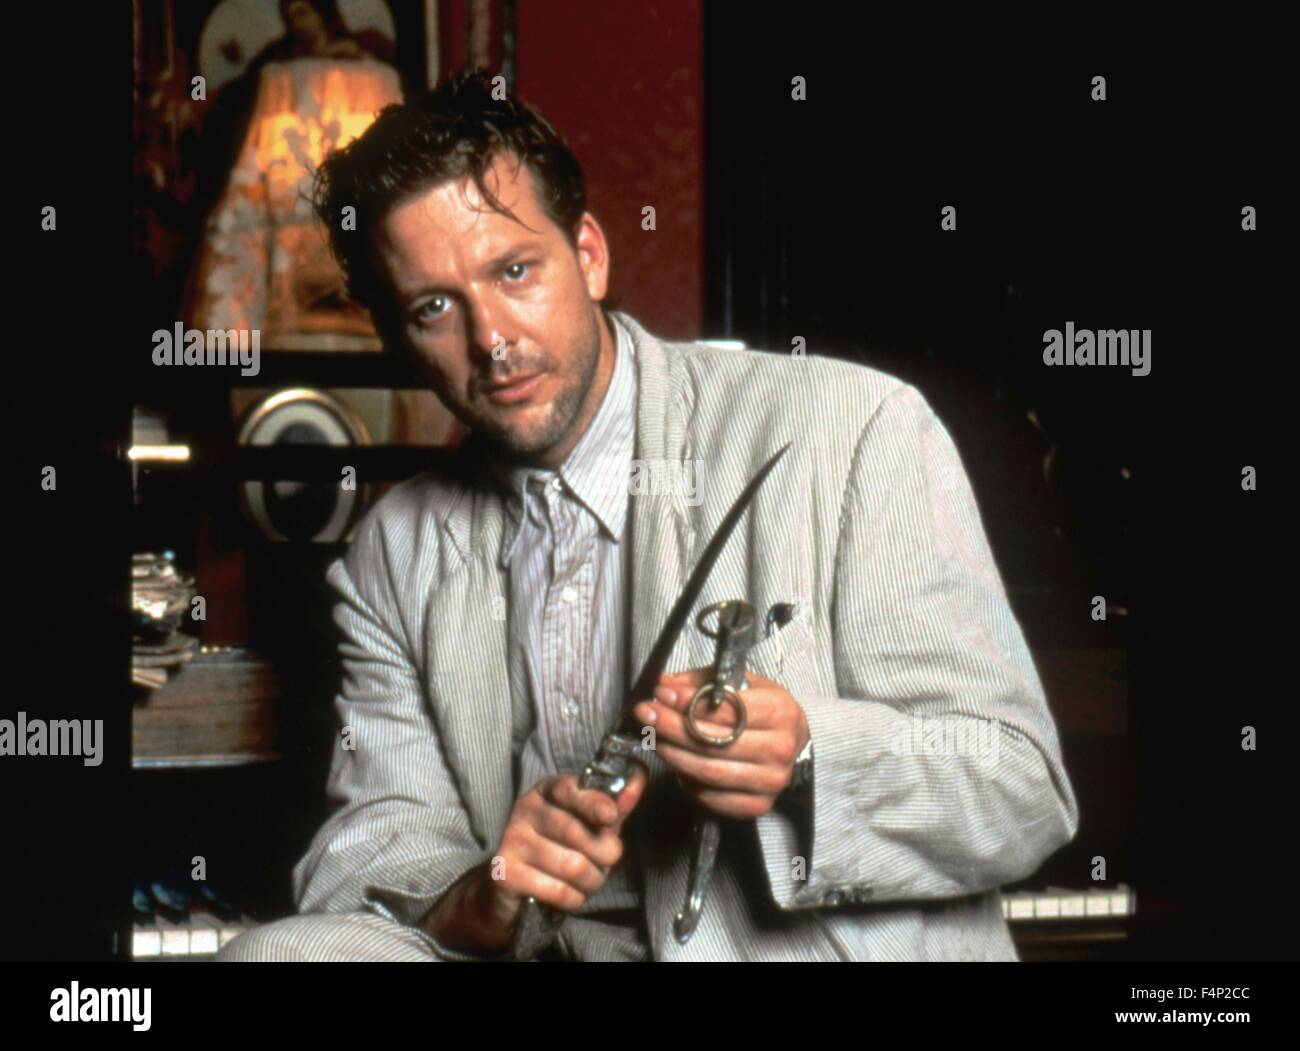 Mickey Rourke / Angel Heart 1987 directed by Alan Parker - Stock Image